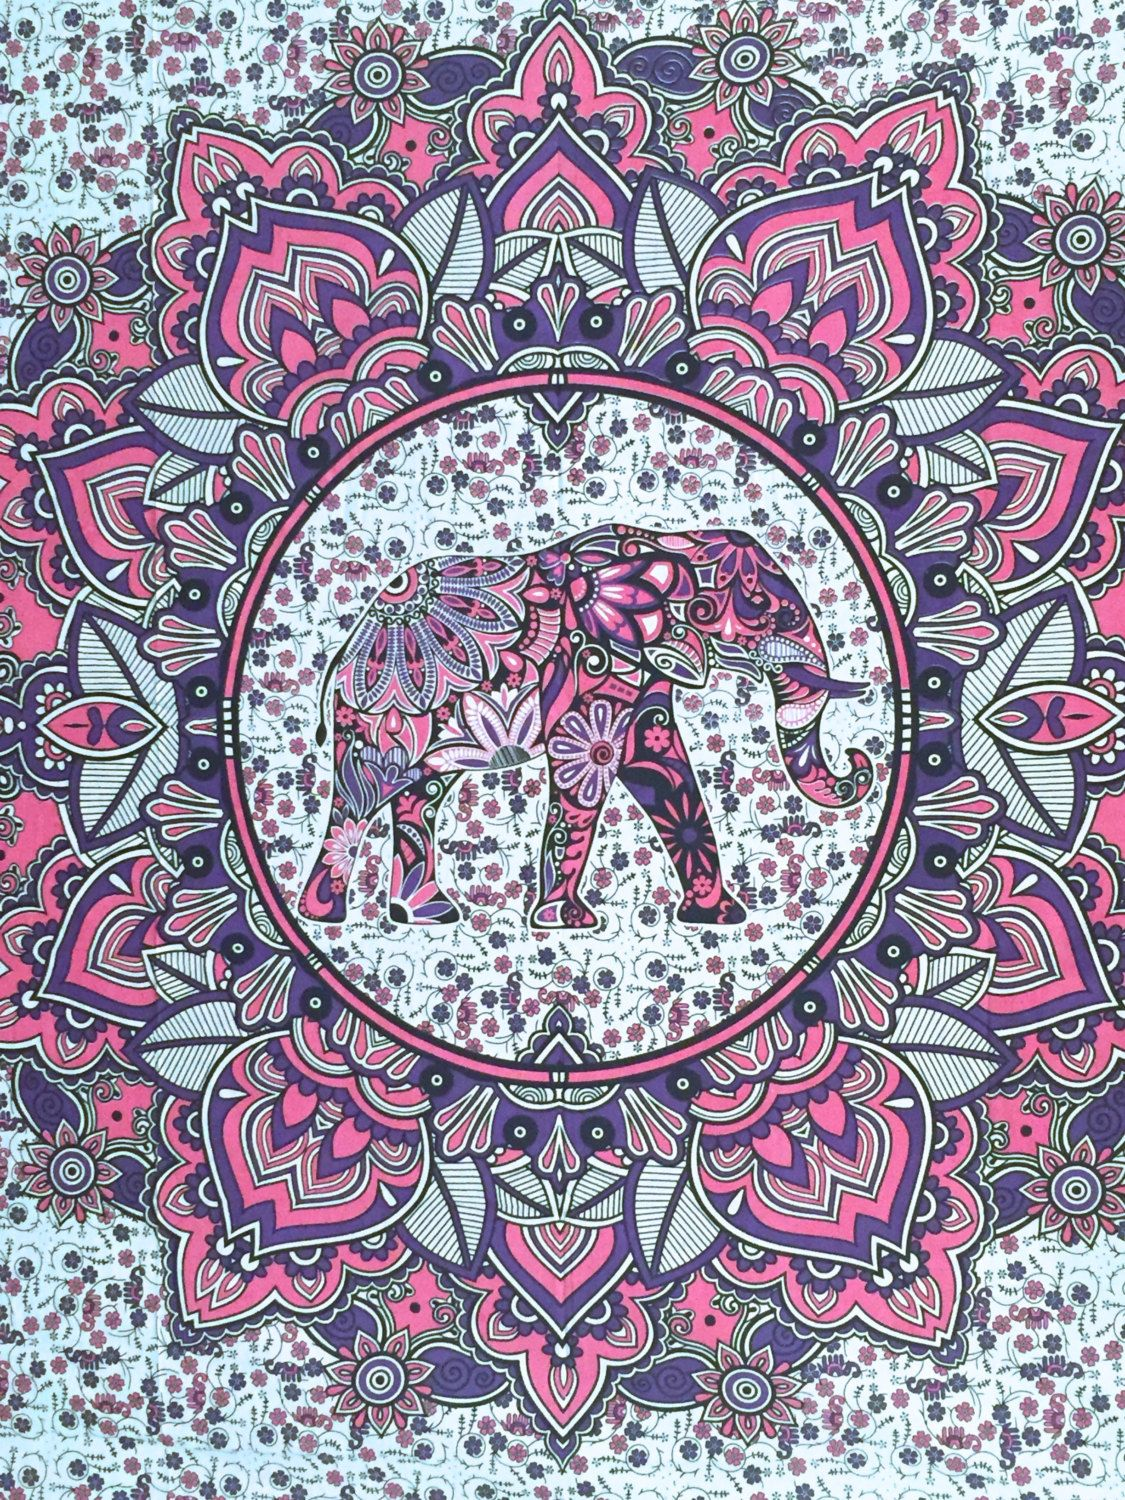 Wallpaper iphone mandala - Queen Mandala Elephant Tapestry Hippie Bohemian Throw Handmade Beach Blanket Dorm Decor Wall Hanging Bright Colors